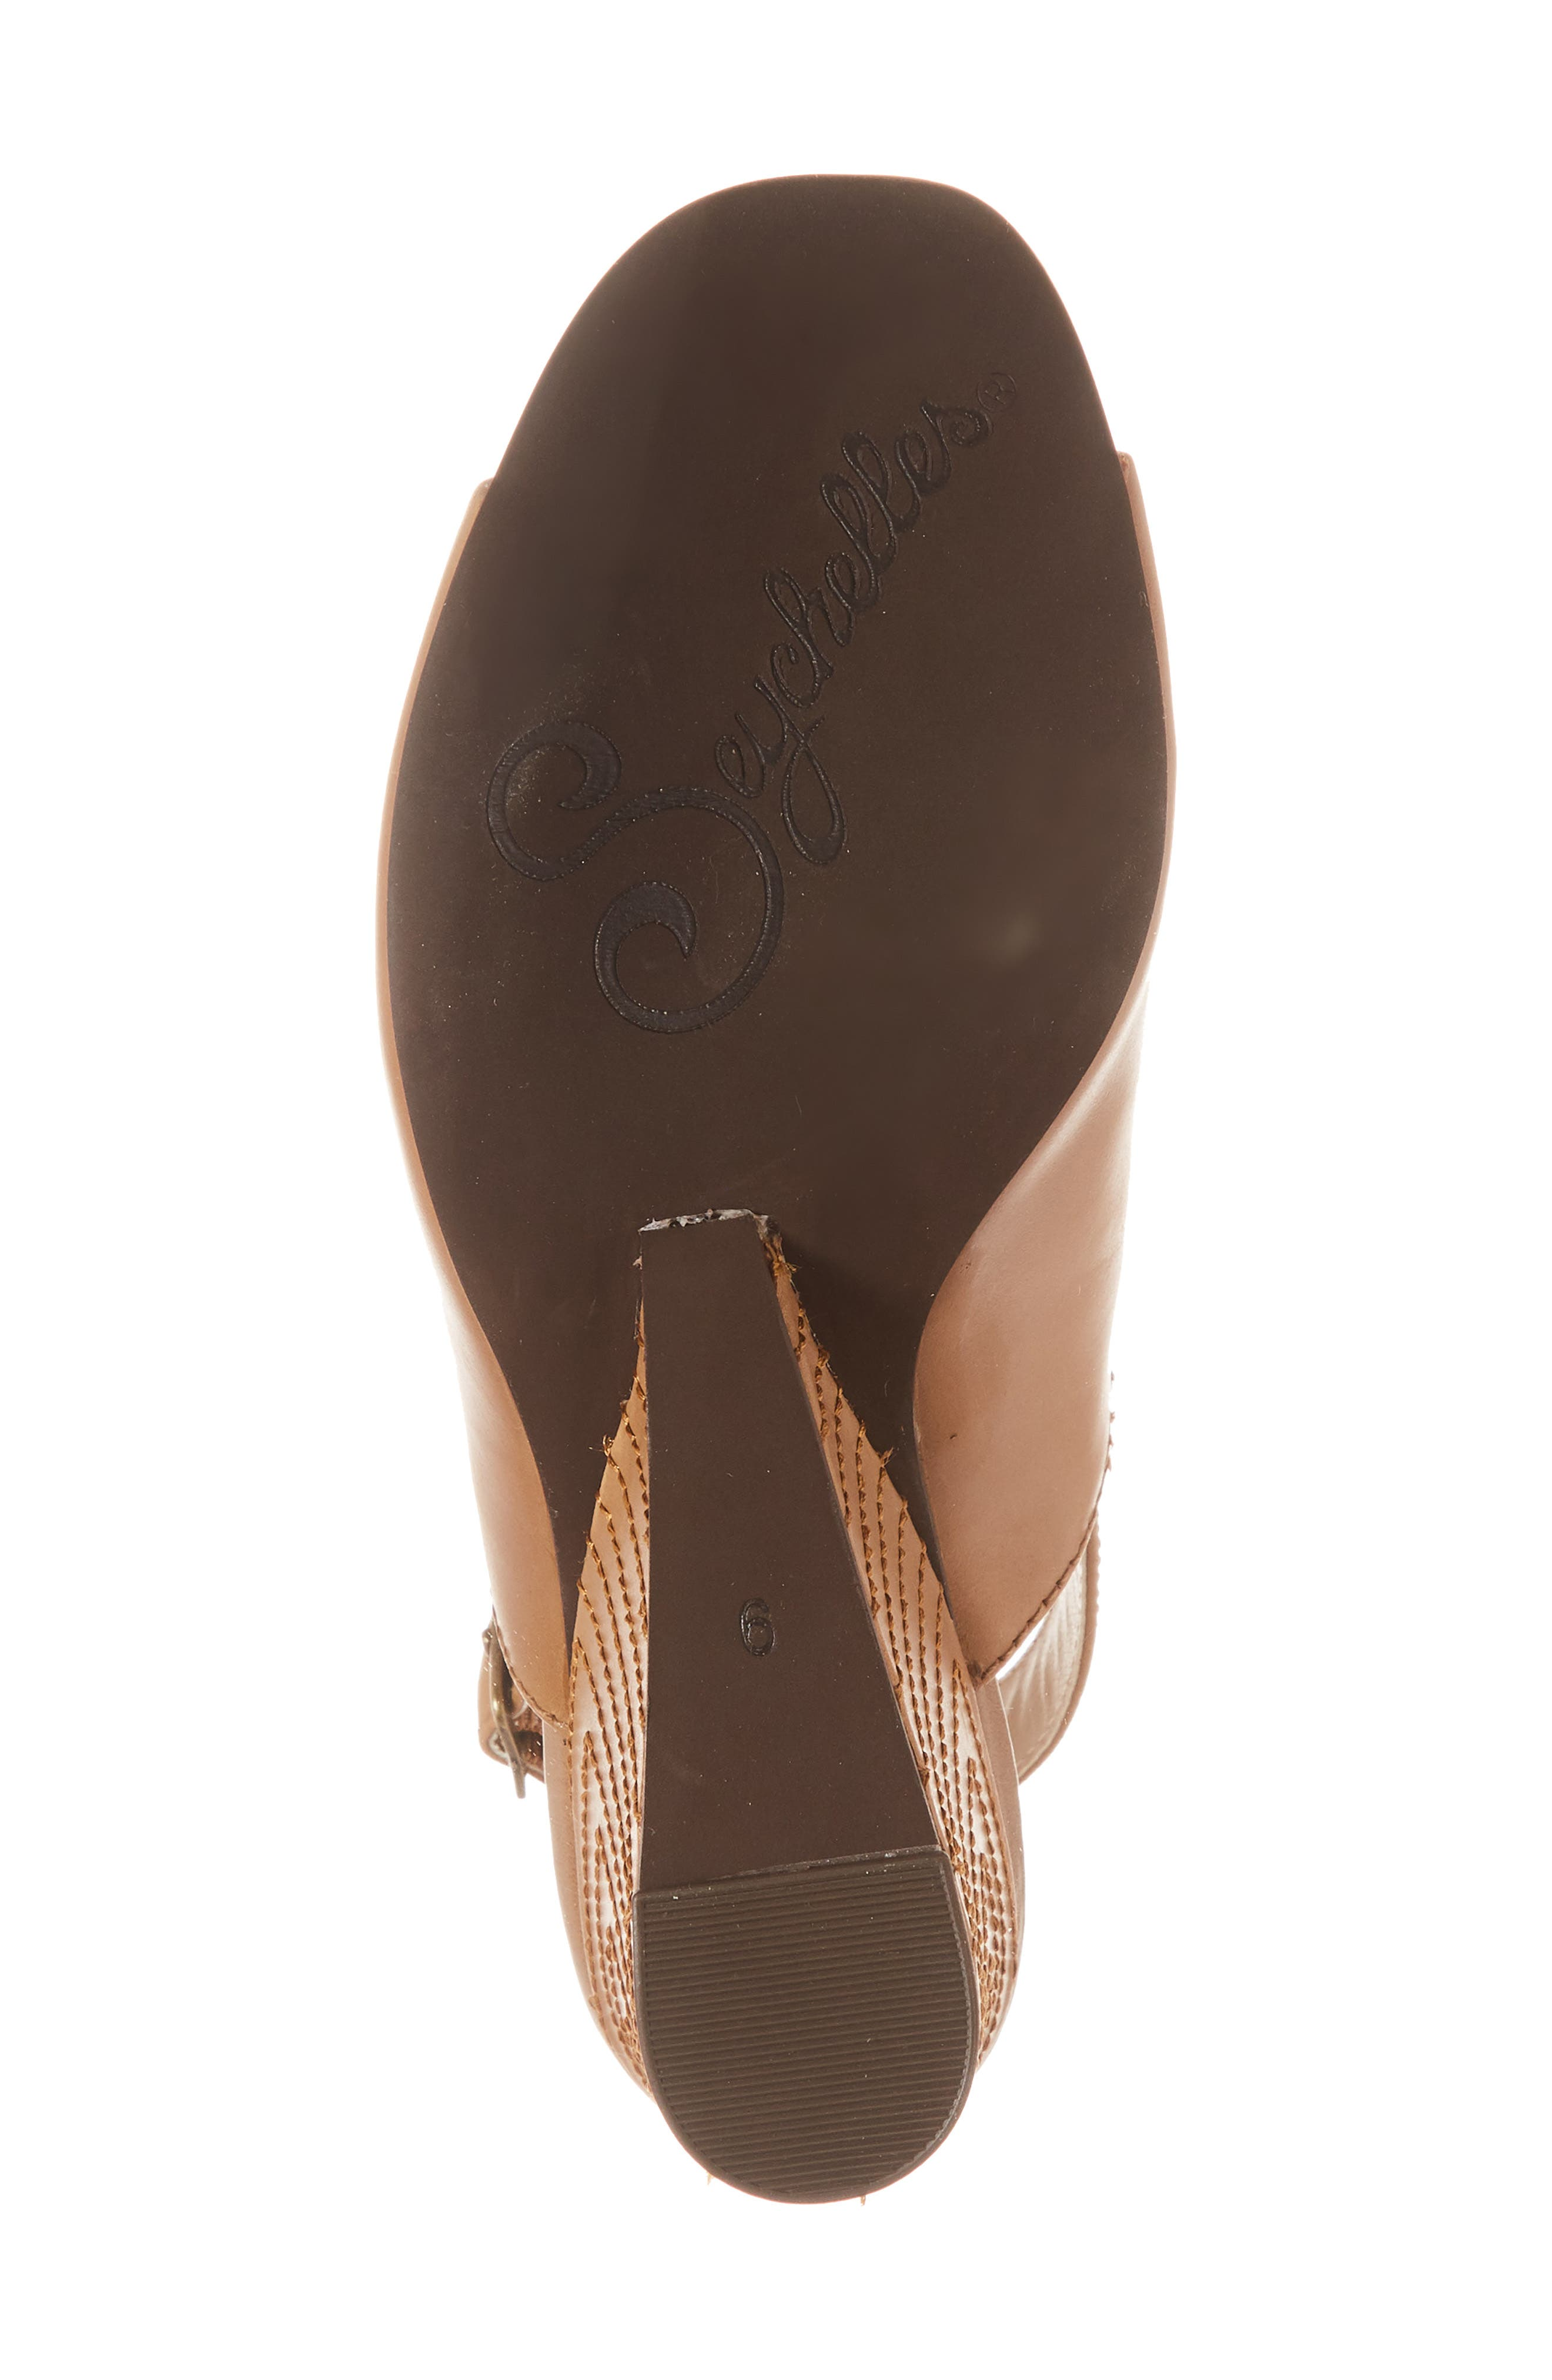 Abyssal Wedge Sandal,                             Alternate thumbnail 6, color,                             TAN LEATHER